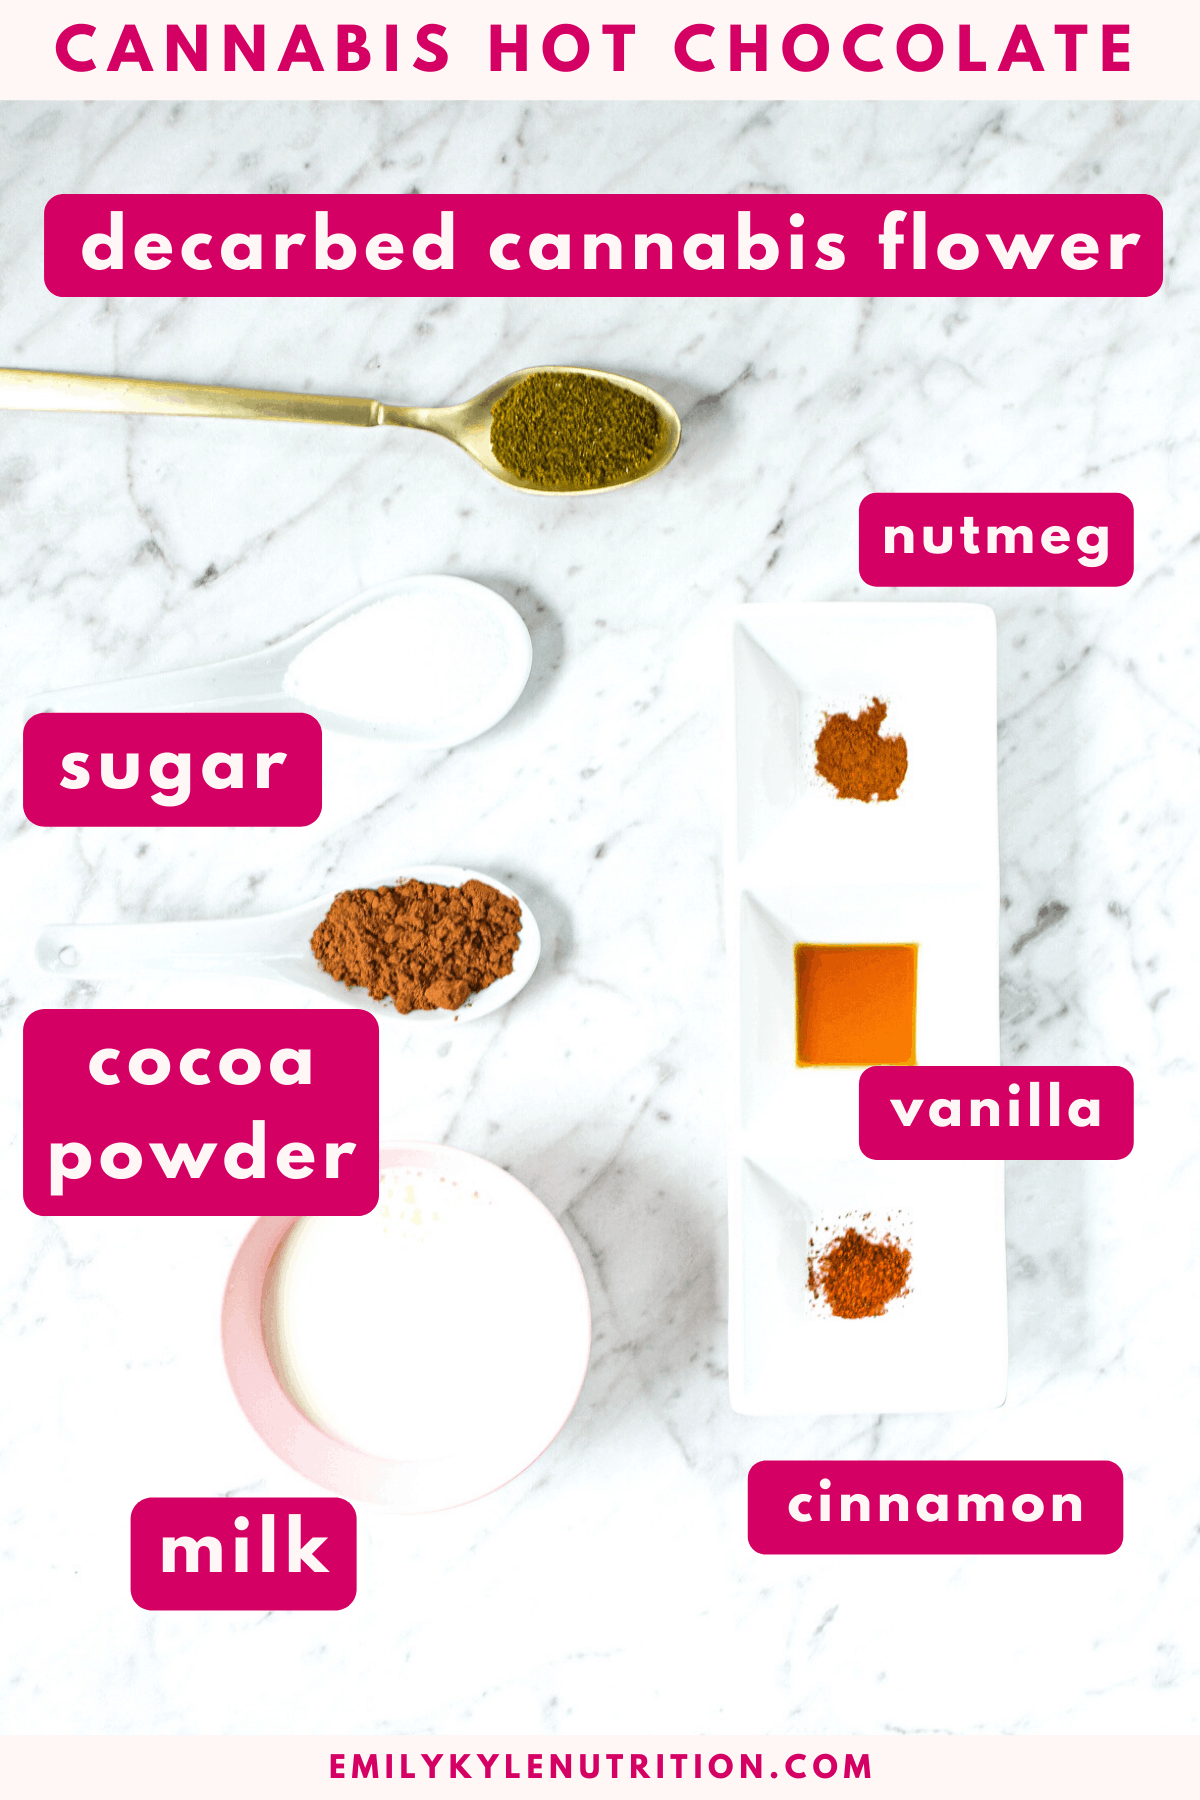 A white countertop with the ingredients needed to make cannabis hot chocolate including decarbed cannabis flower, sugar, cocoa powder, milk, nutmeg, vanilla and cinnamon